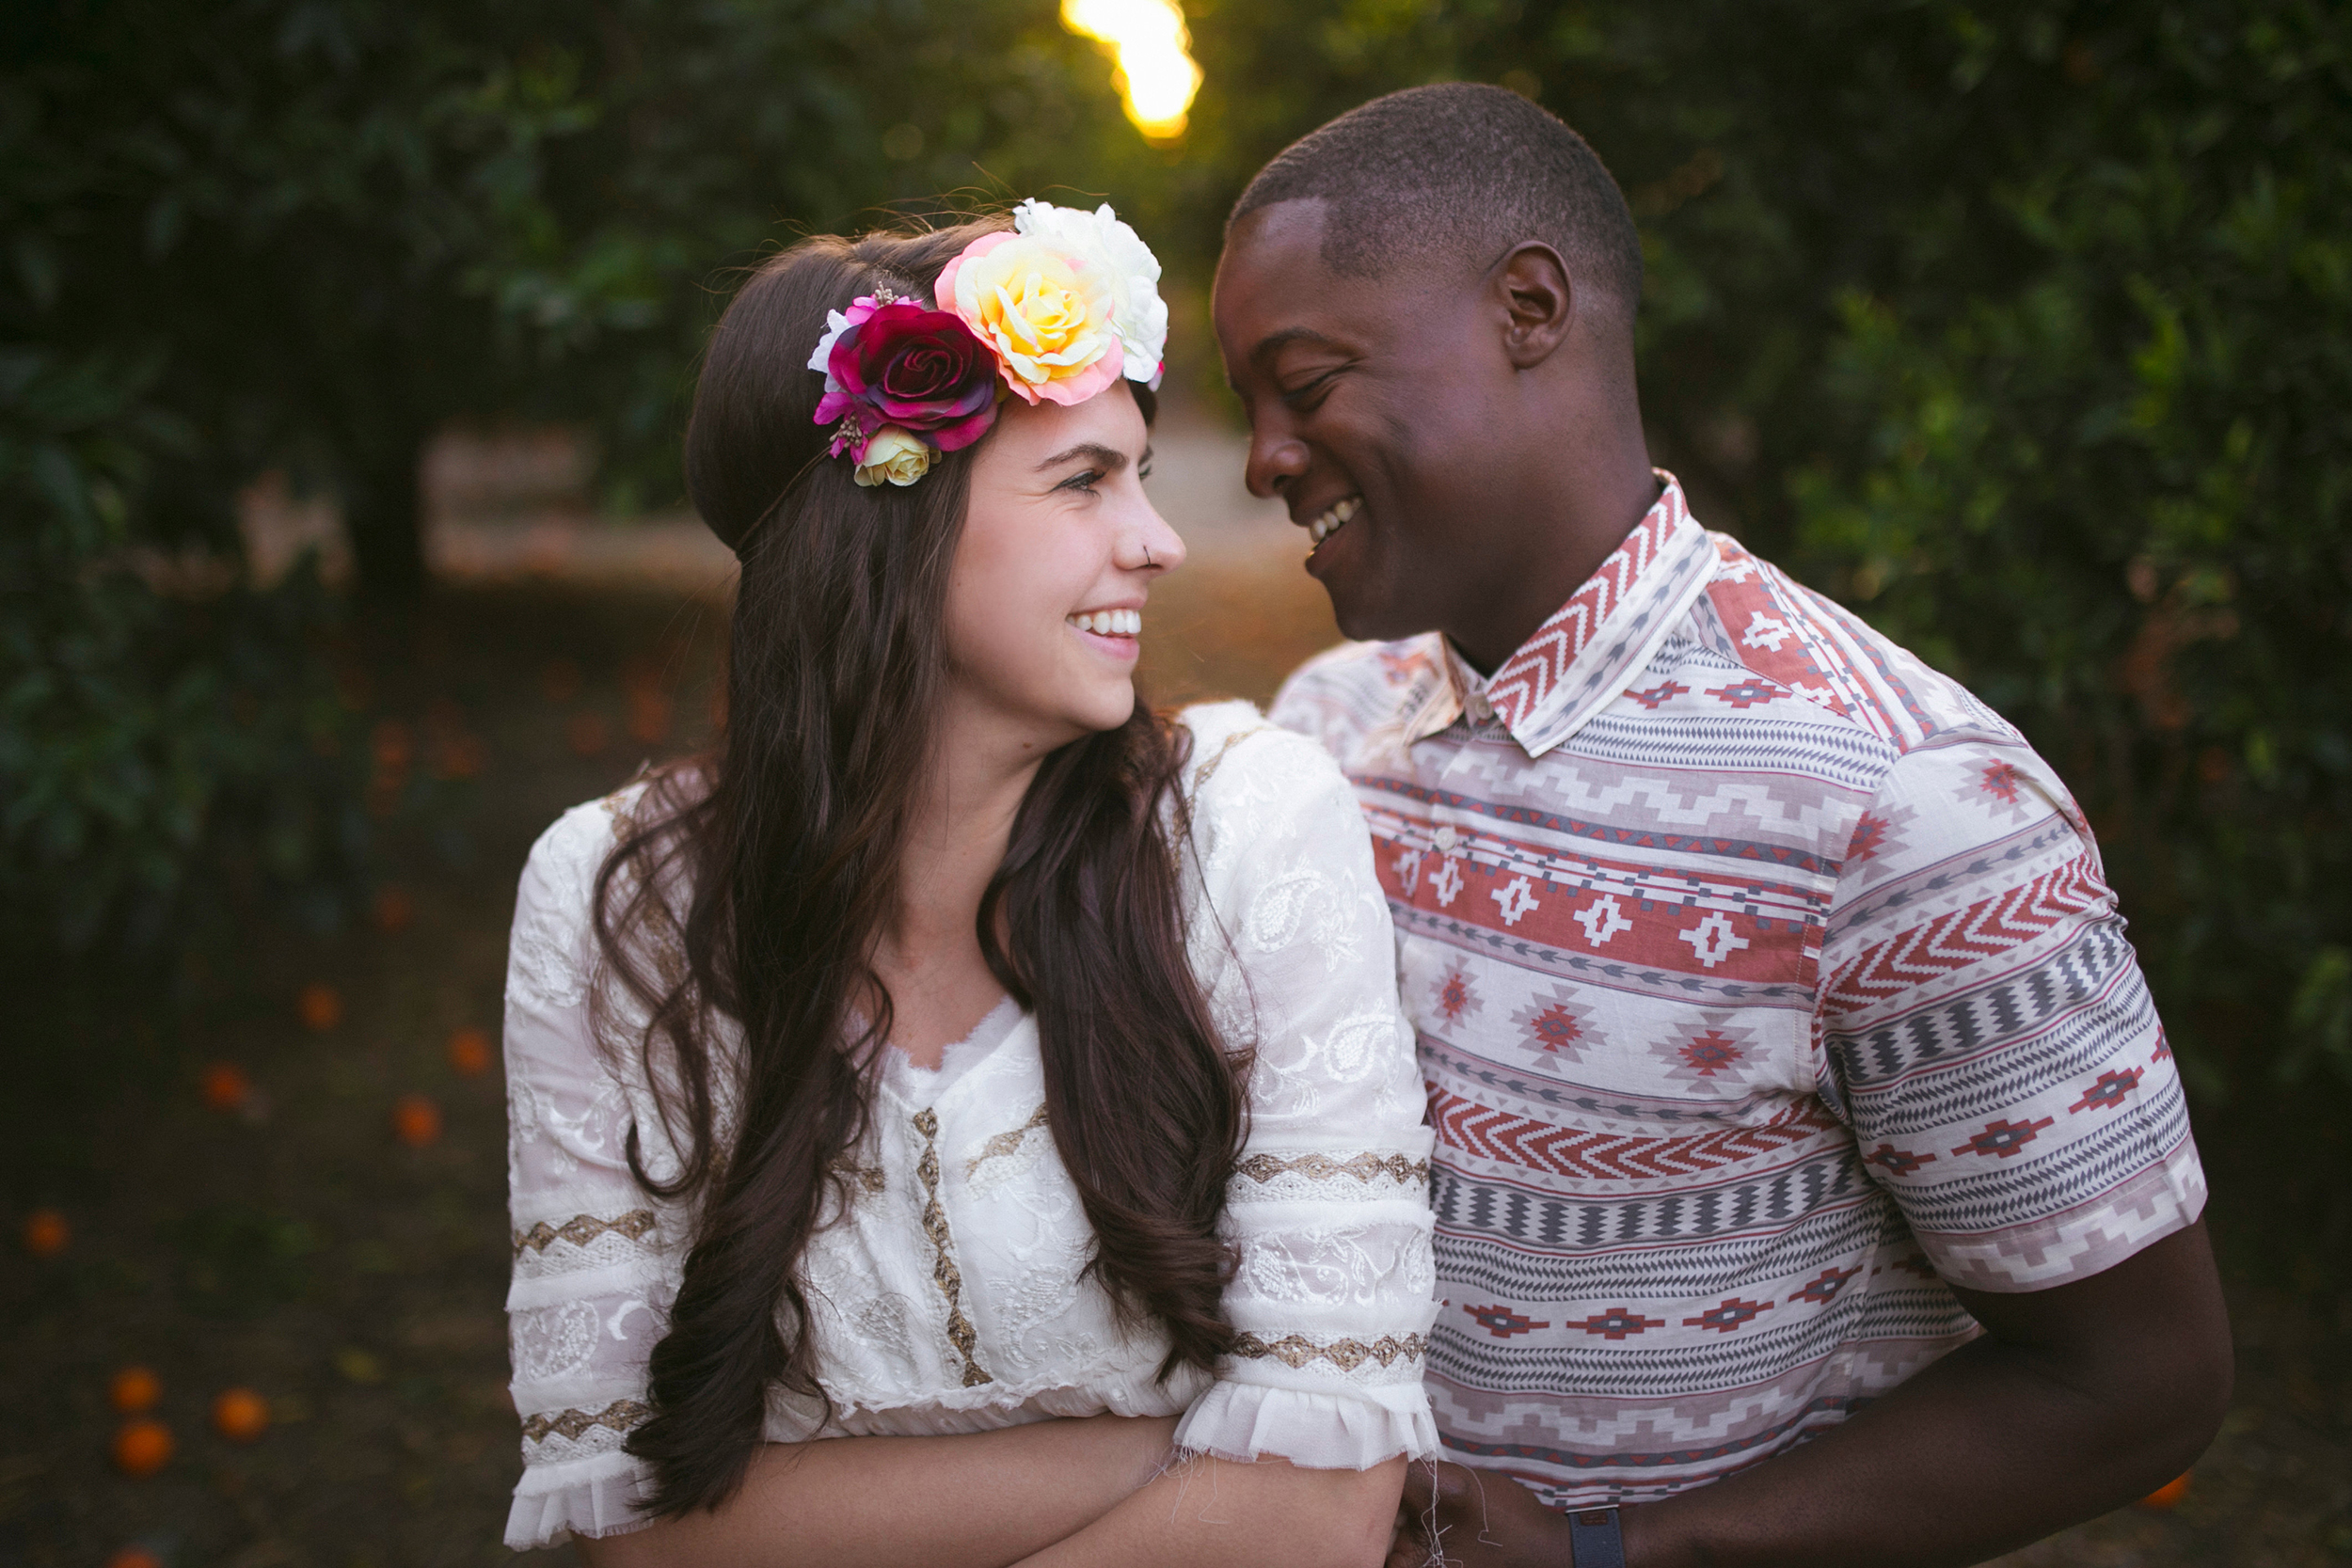 Colby-and-Jess-Adventure-Engagement-Photography-Orange-Grove-San-Bernardino-California292.jpg